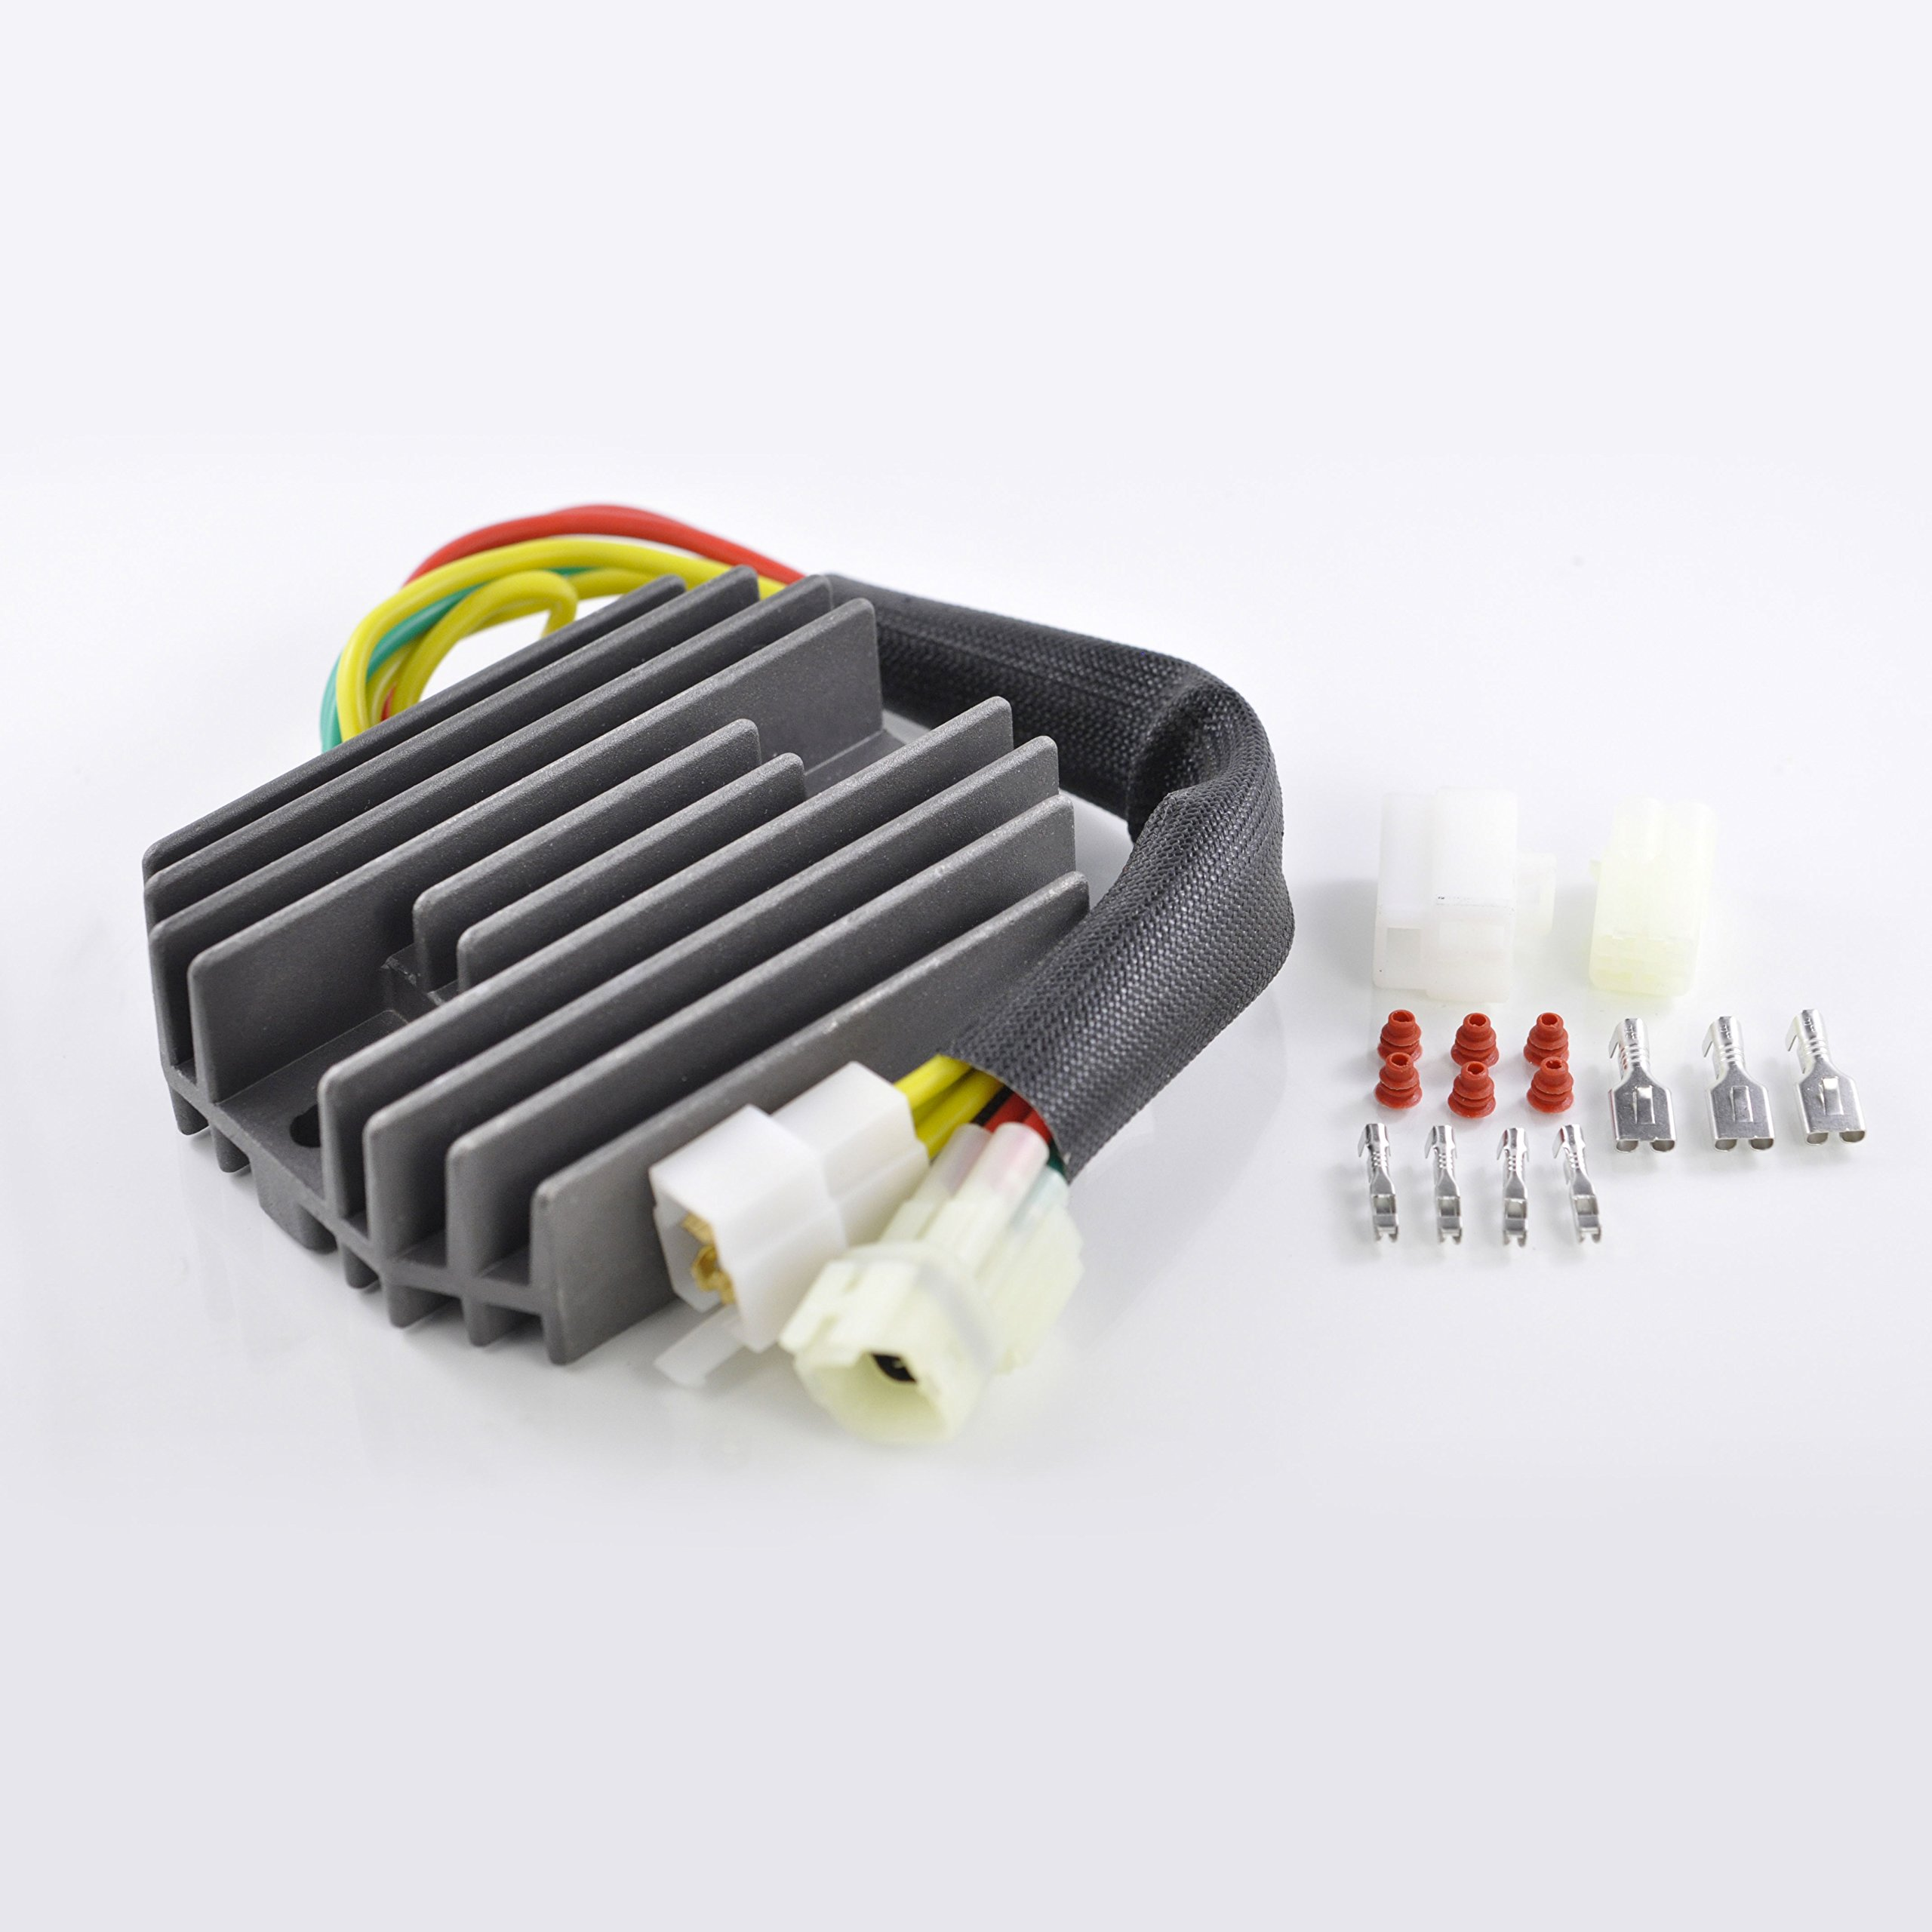 Best Rated In Powersports Voltage Regulators Helpful Customer 700 King Quad Regulator Wiring Diagram Rectifier For Arctic Cat 375 400 500 Cc Suzuki Sv 650 1000